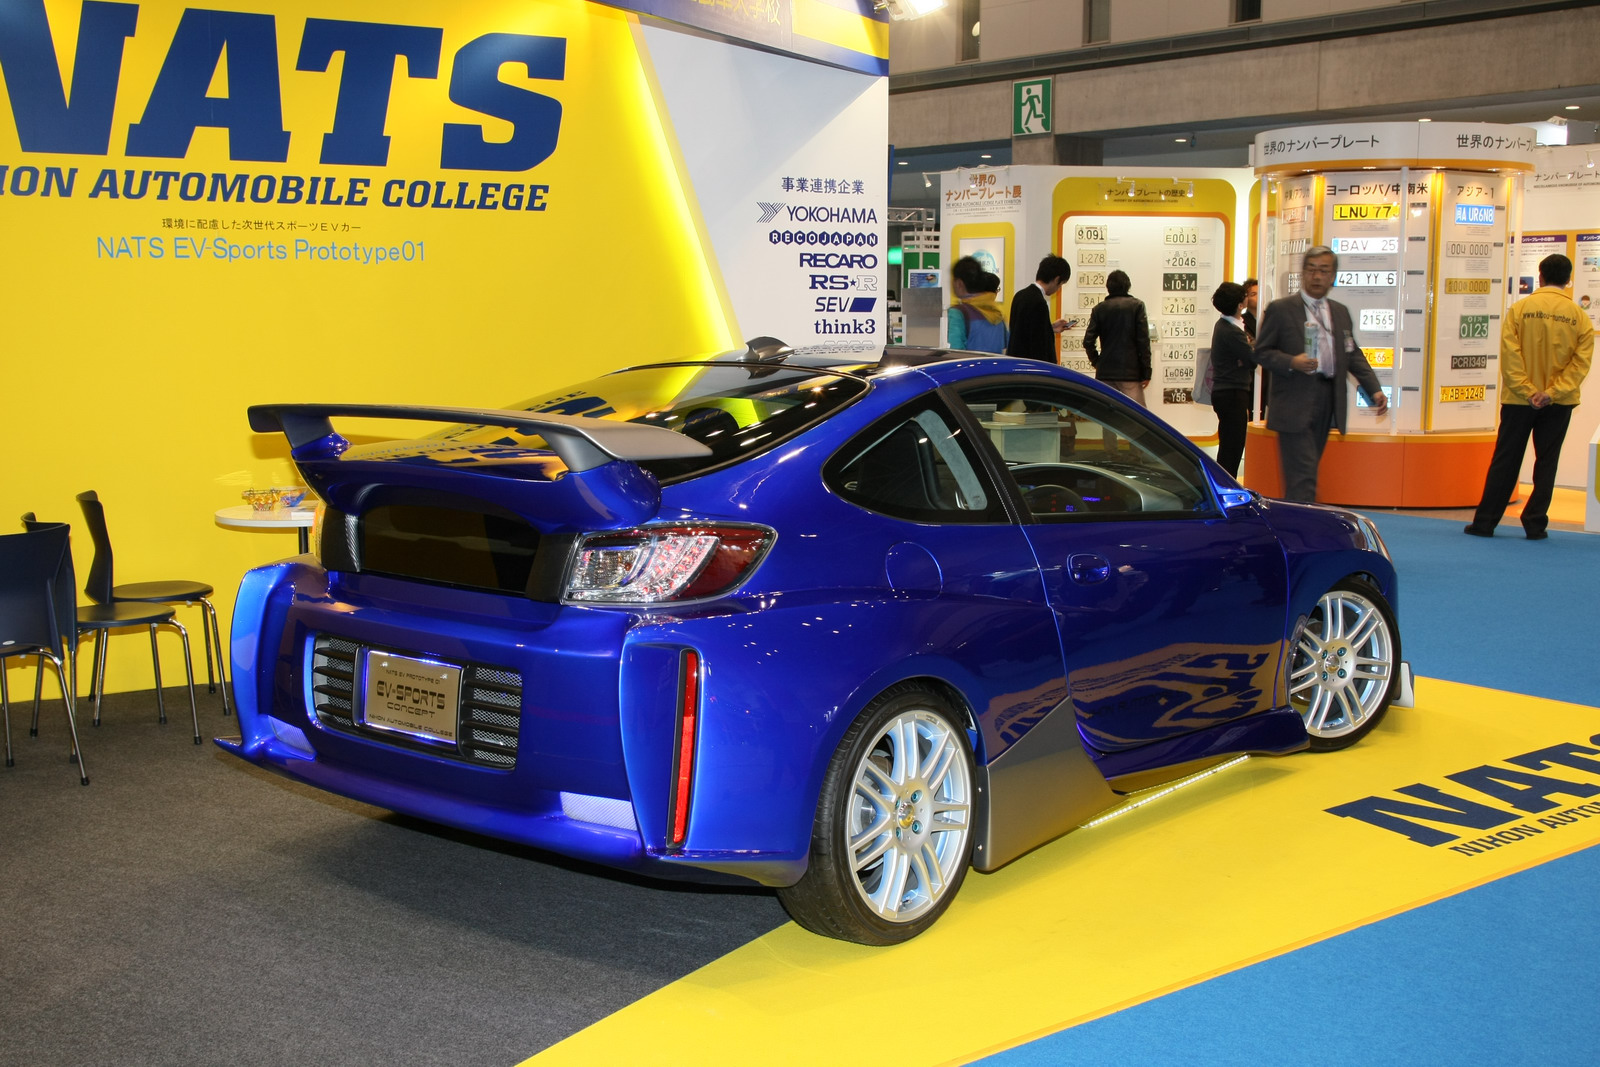 The Students Over At Nihon Automobile College Nats In An Have Churned Out Some Pretty Bizarre Creations Years Ranging From A Honda Beat